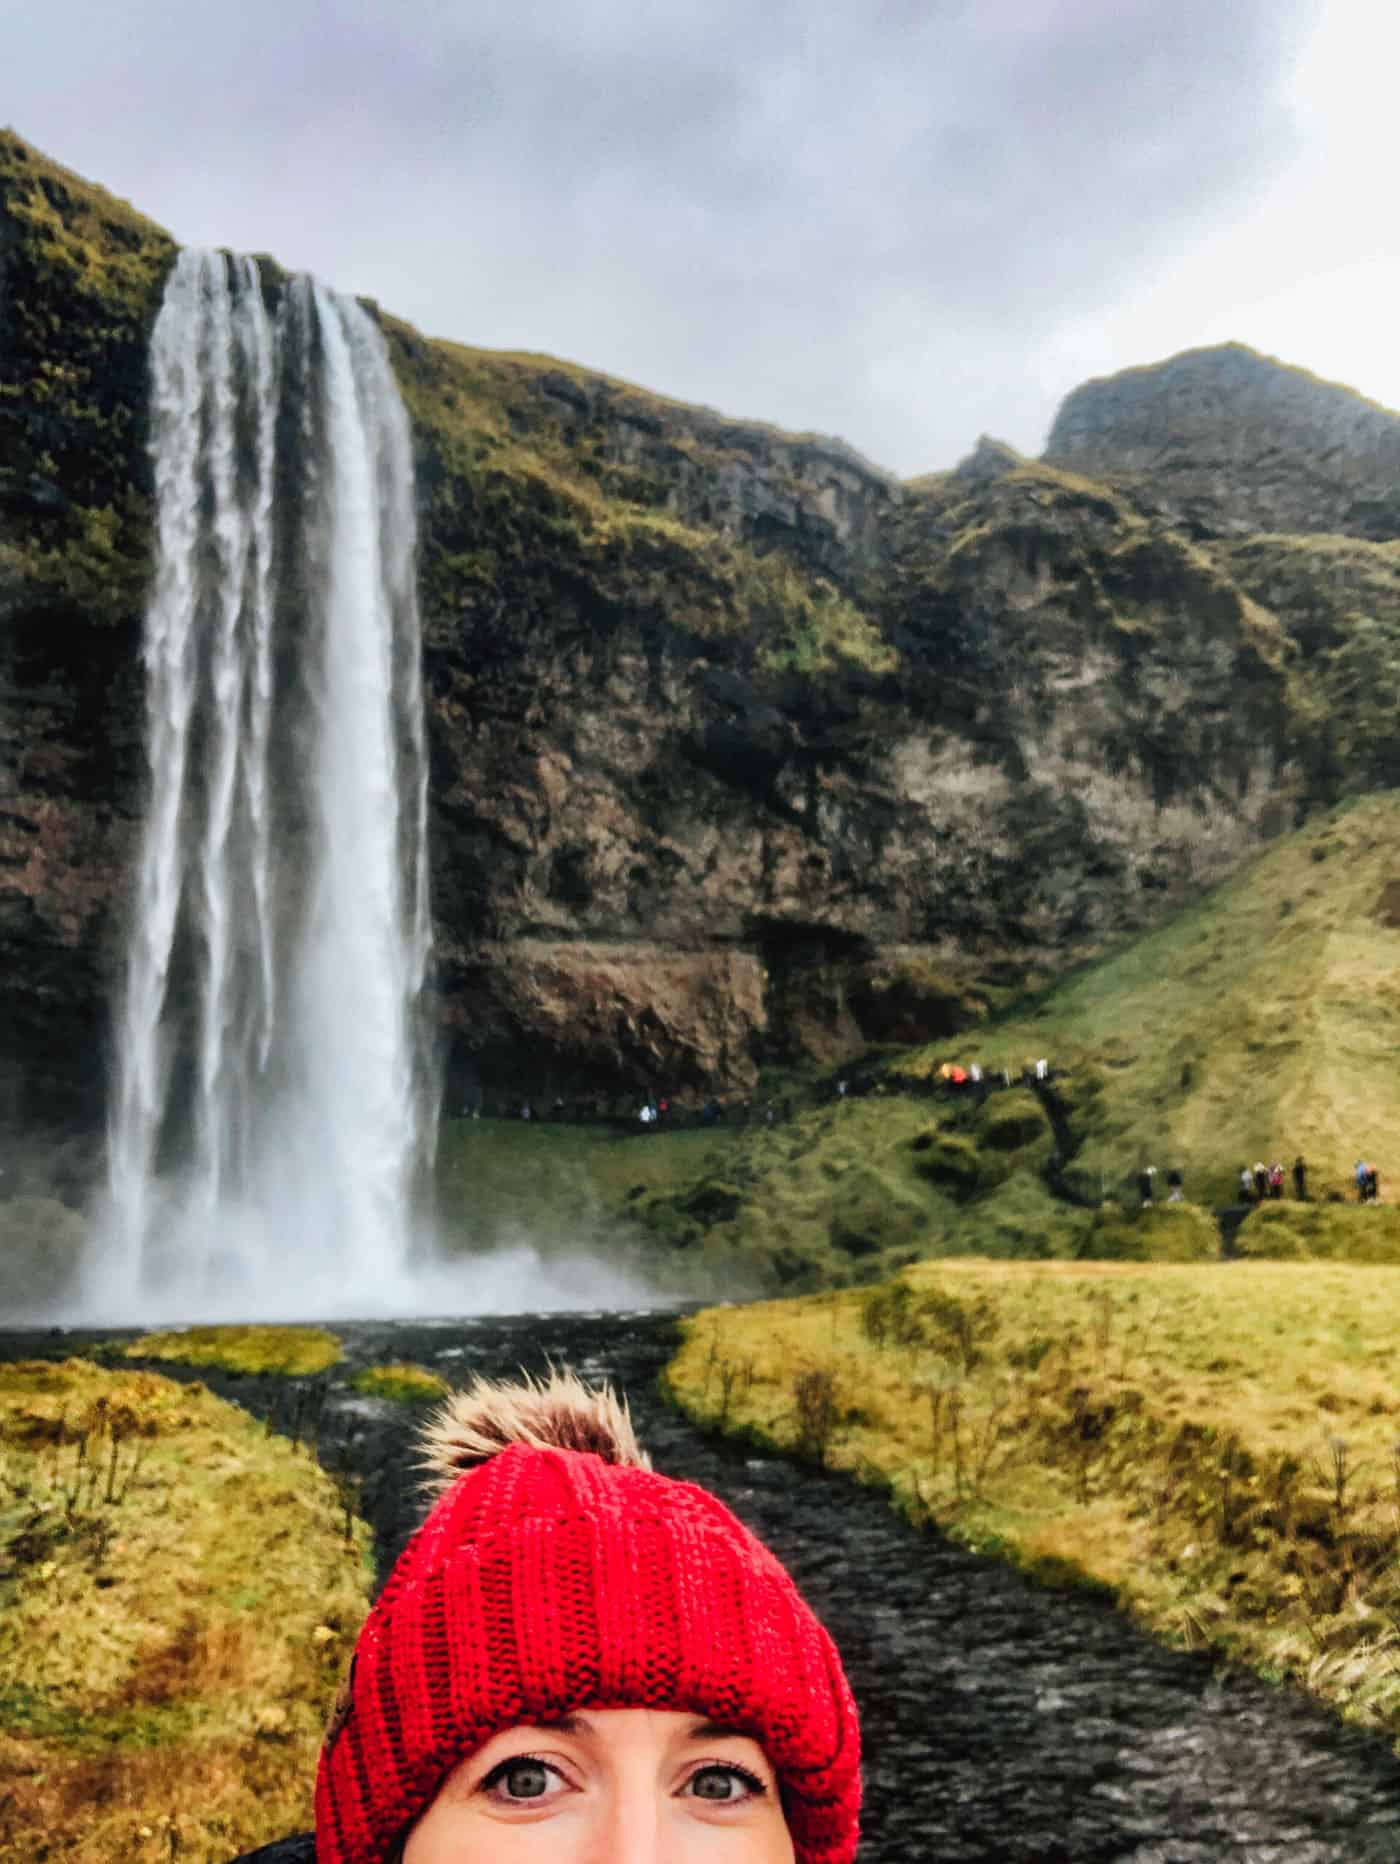 Channing at Seljalandsfoss waterfall in Iceland